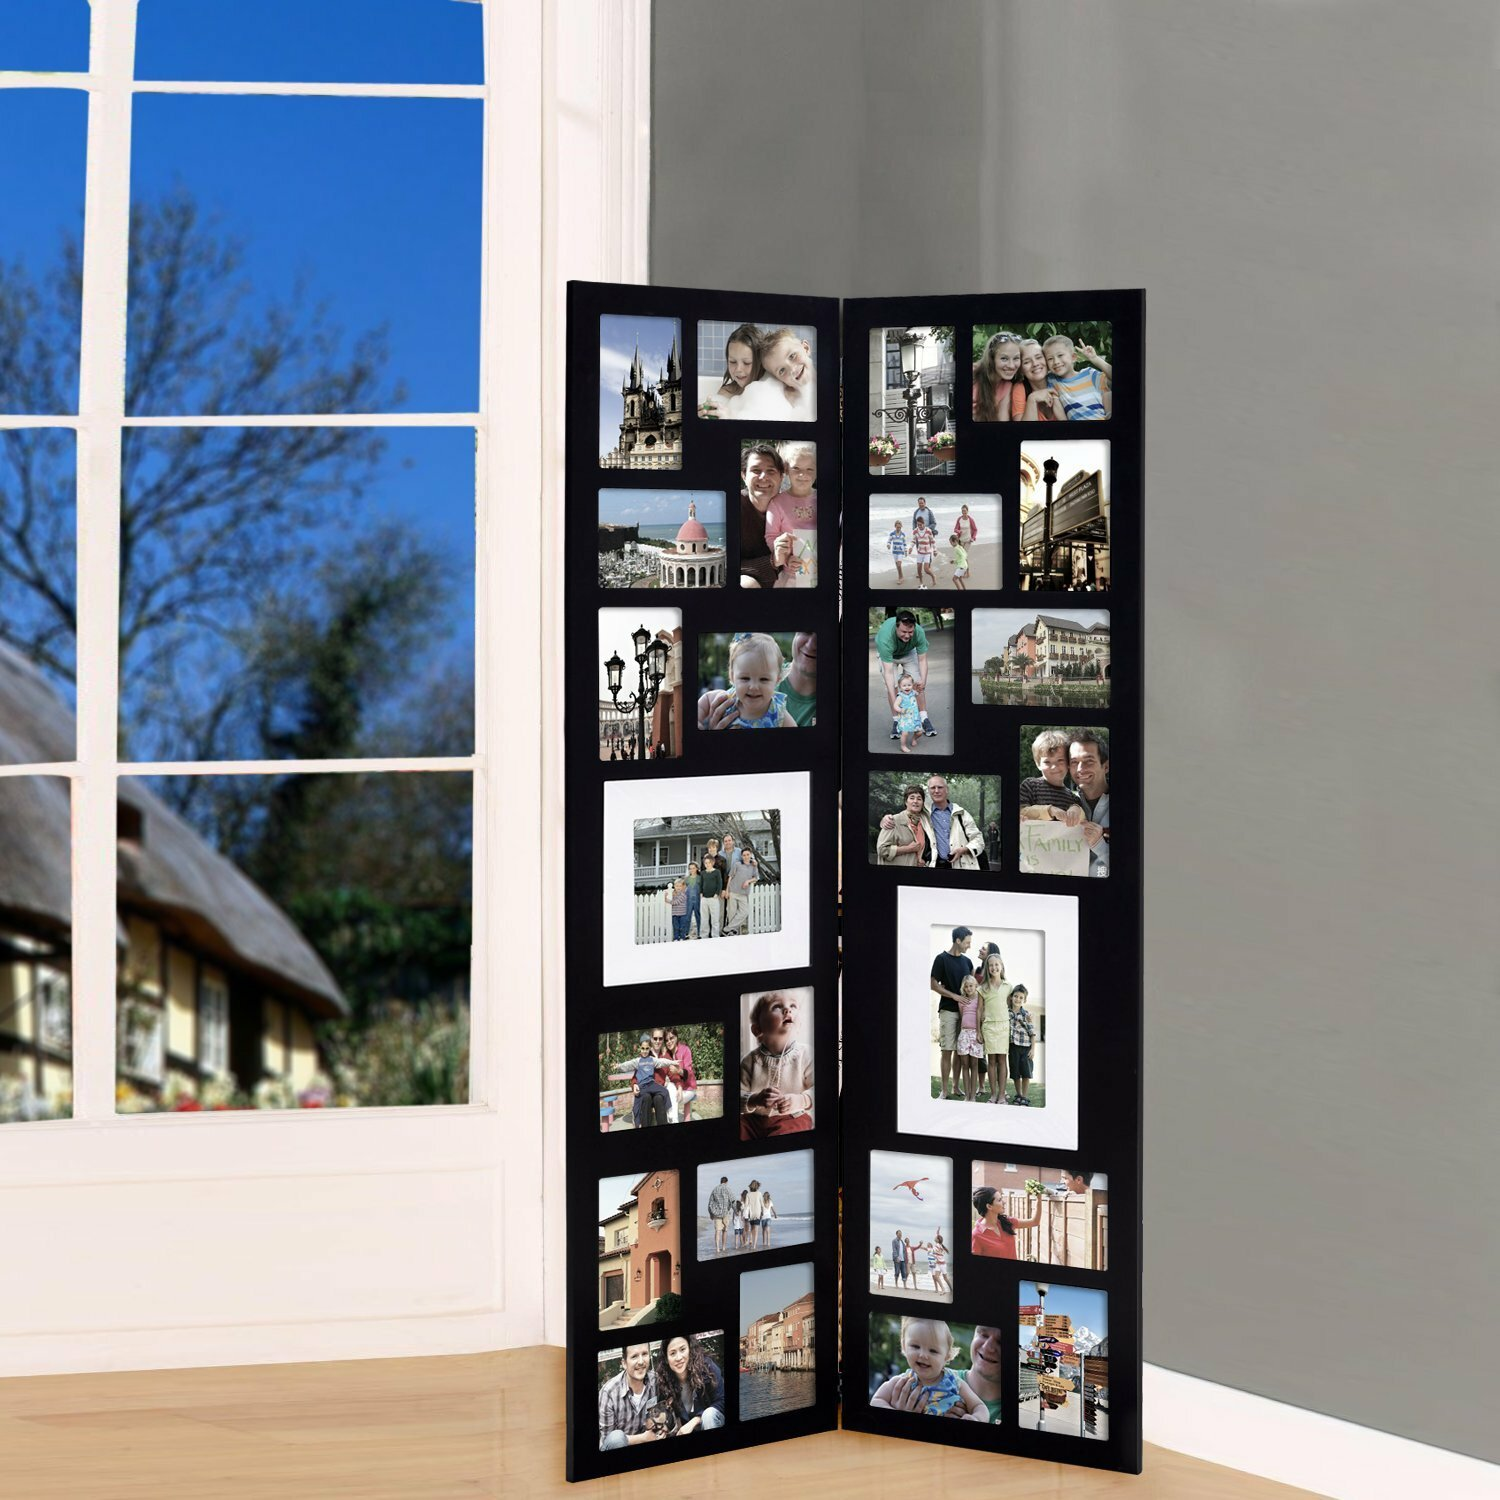 adecotrading 26 opening decorative wood folding floor standing photo collage picture frame. Black Bedroom Furniture Sets. Home Design Ideas